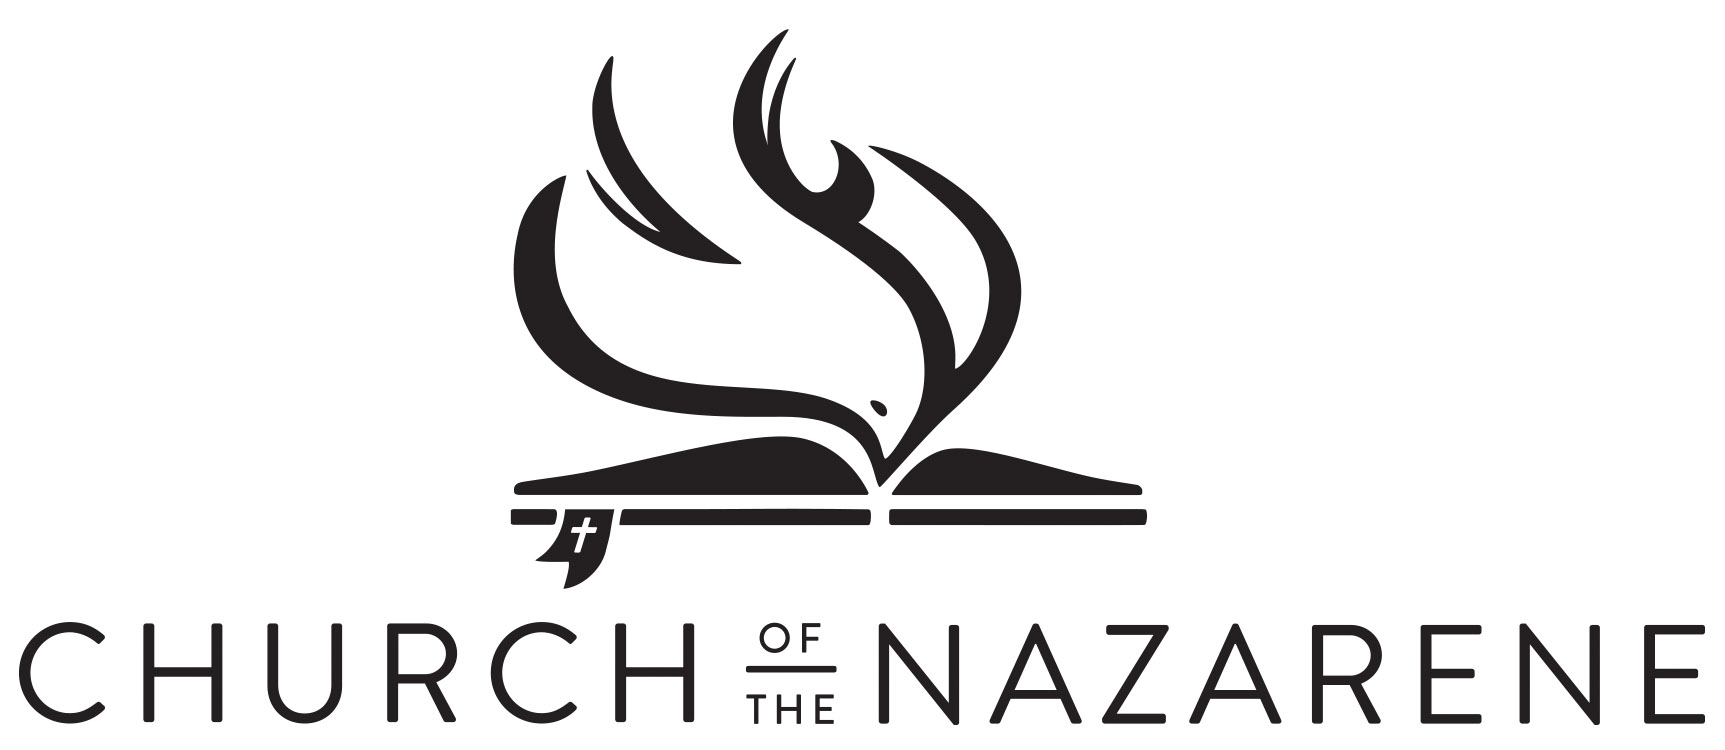 ENGLISH-nazarene-logo-wide-text-outlines